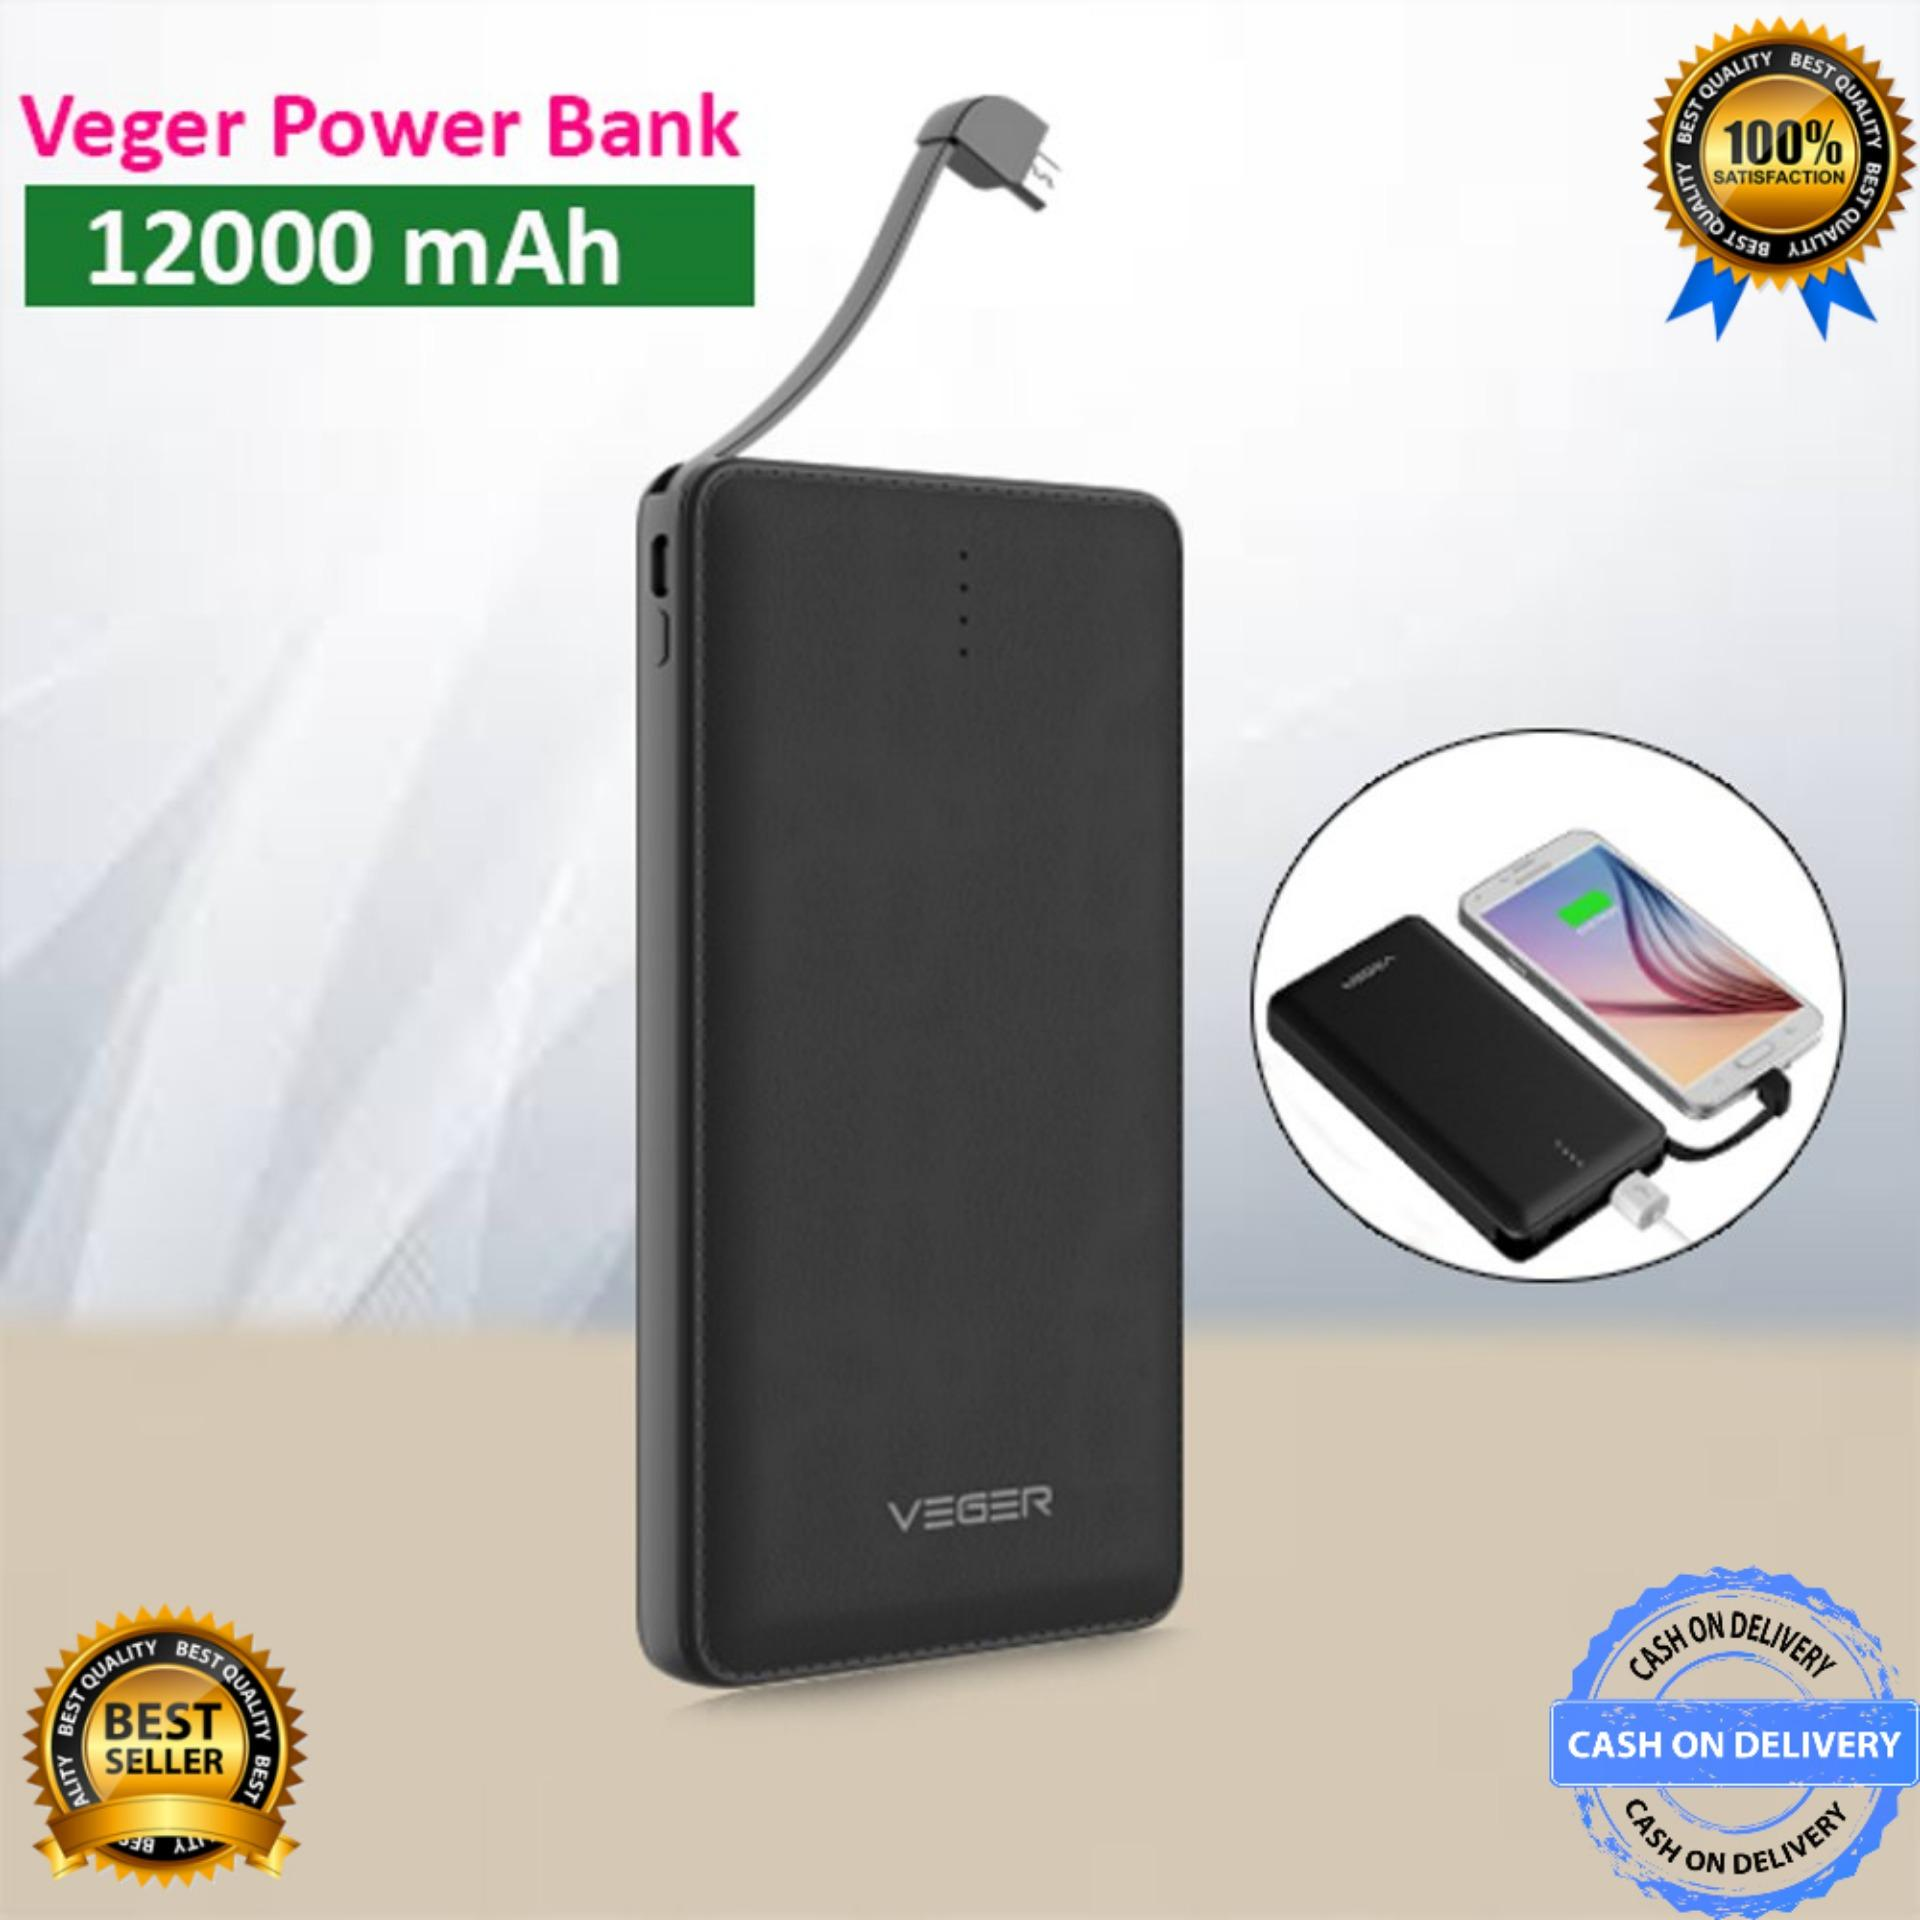 List Harga Power Bank Samsung 12000mah Terbaru 2018 Hargamerdeka Powerbank Pokemon Pokeball Senter Flashlight Cell Hybrid Tech Veger 12000 Mah